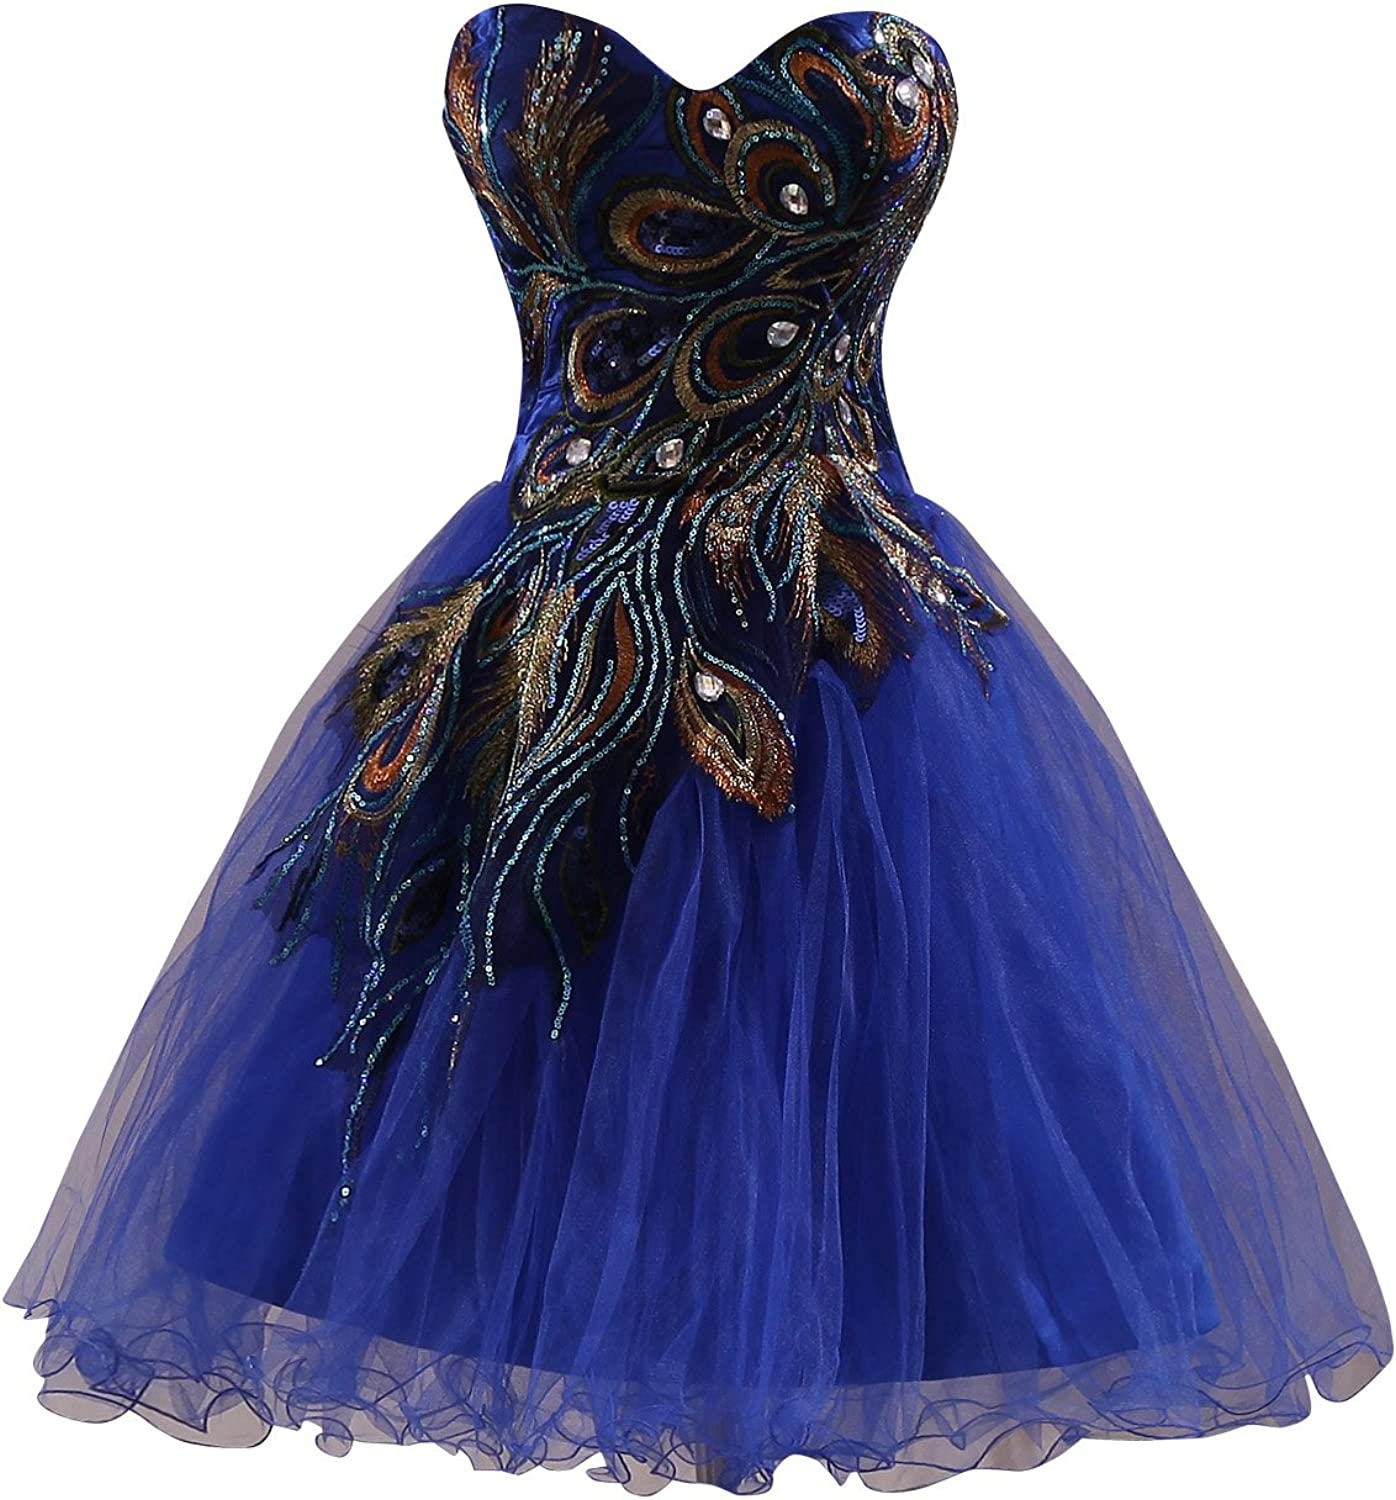 Clearbridal Women's Short Peacock Prom Party Homecoming Dress SD039A